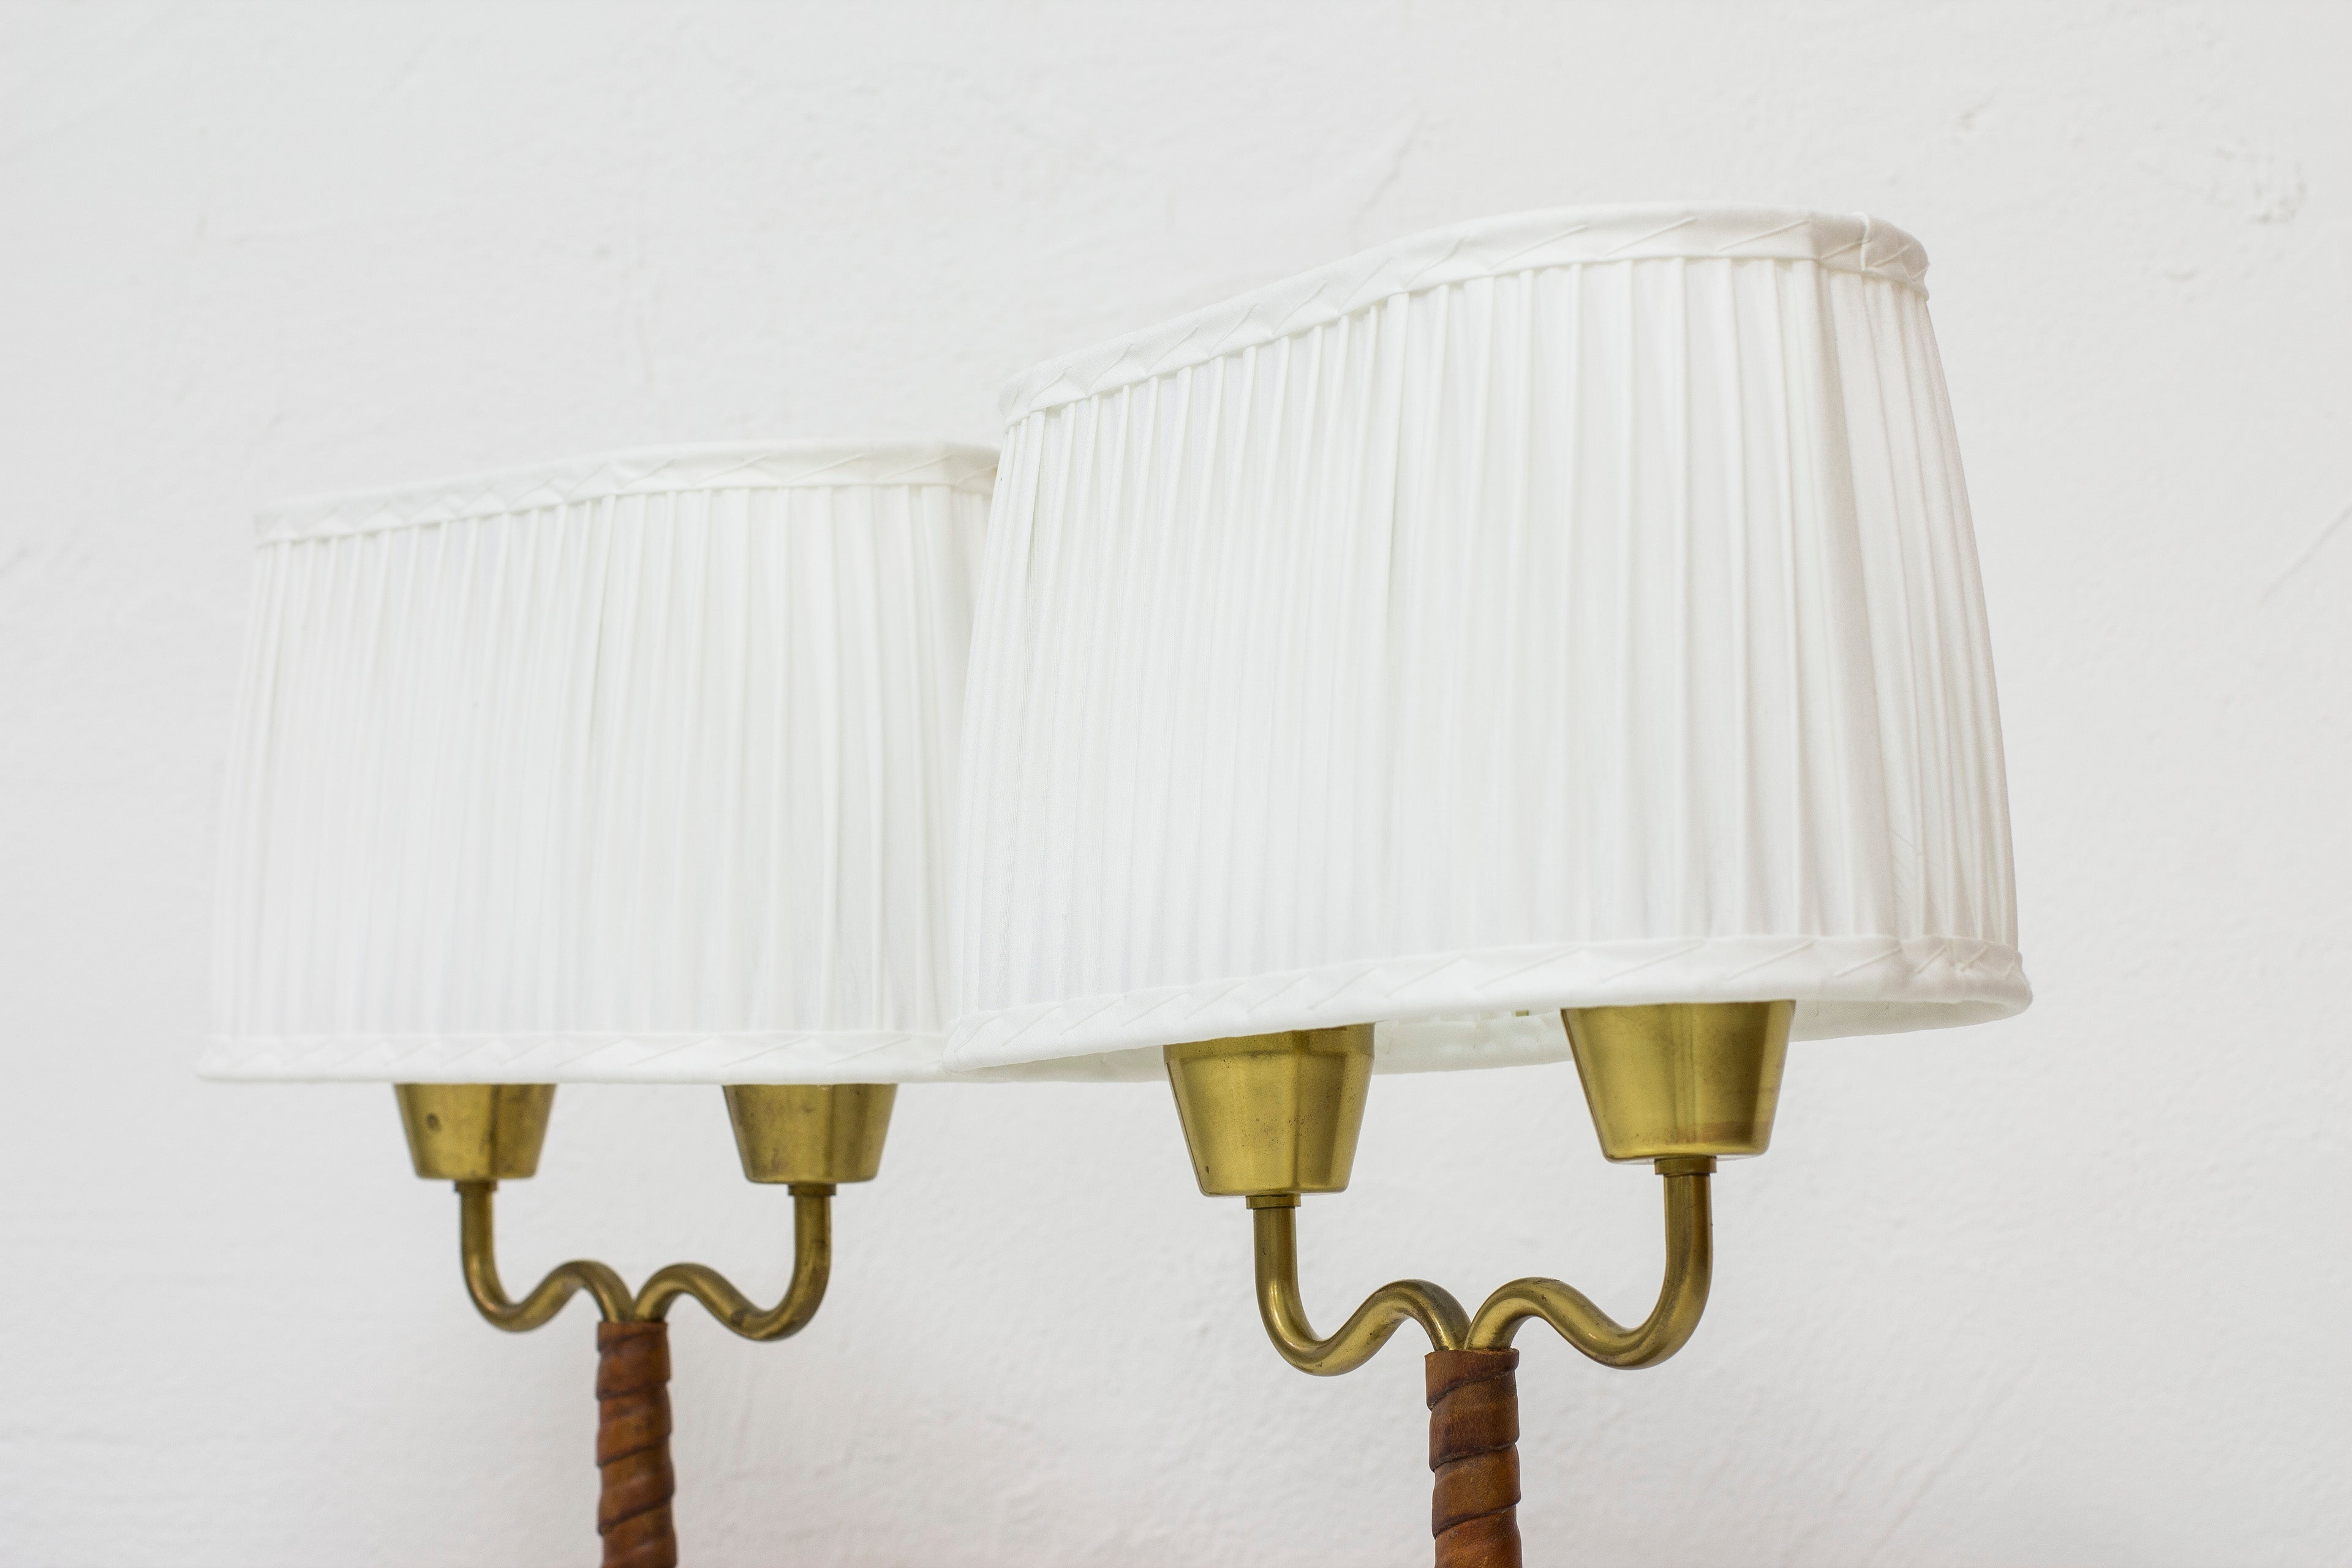 Pair of lamps by Sonja Katzin